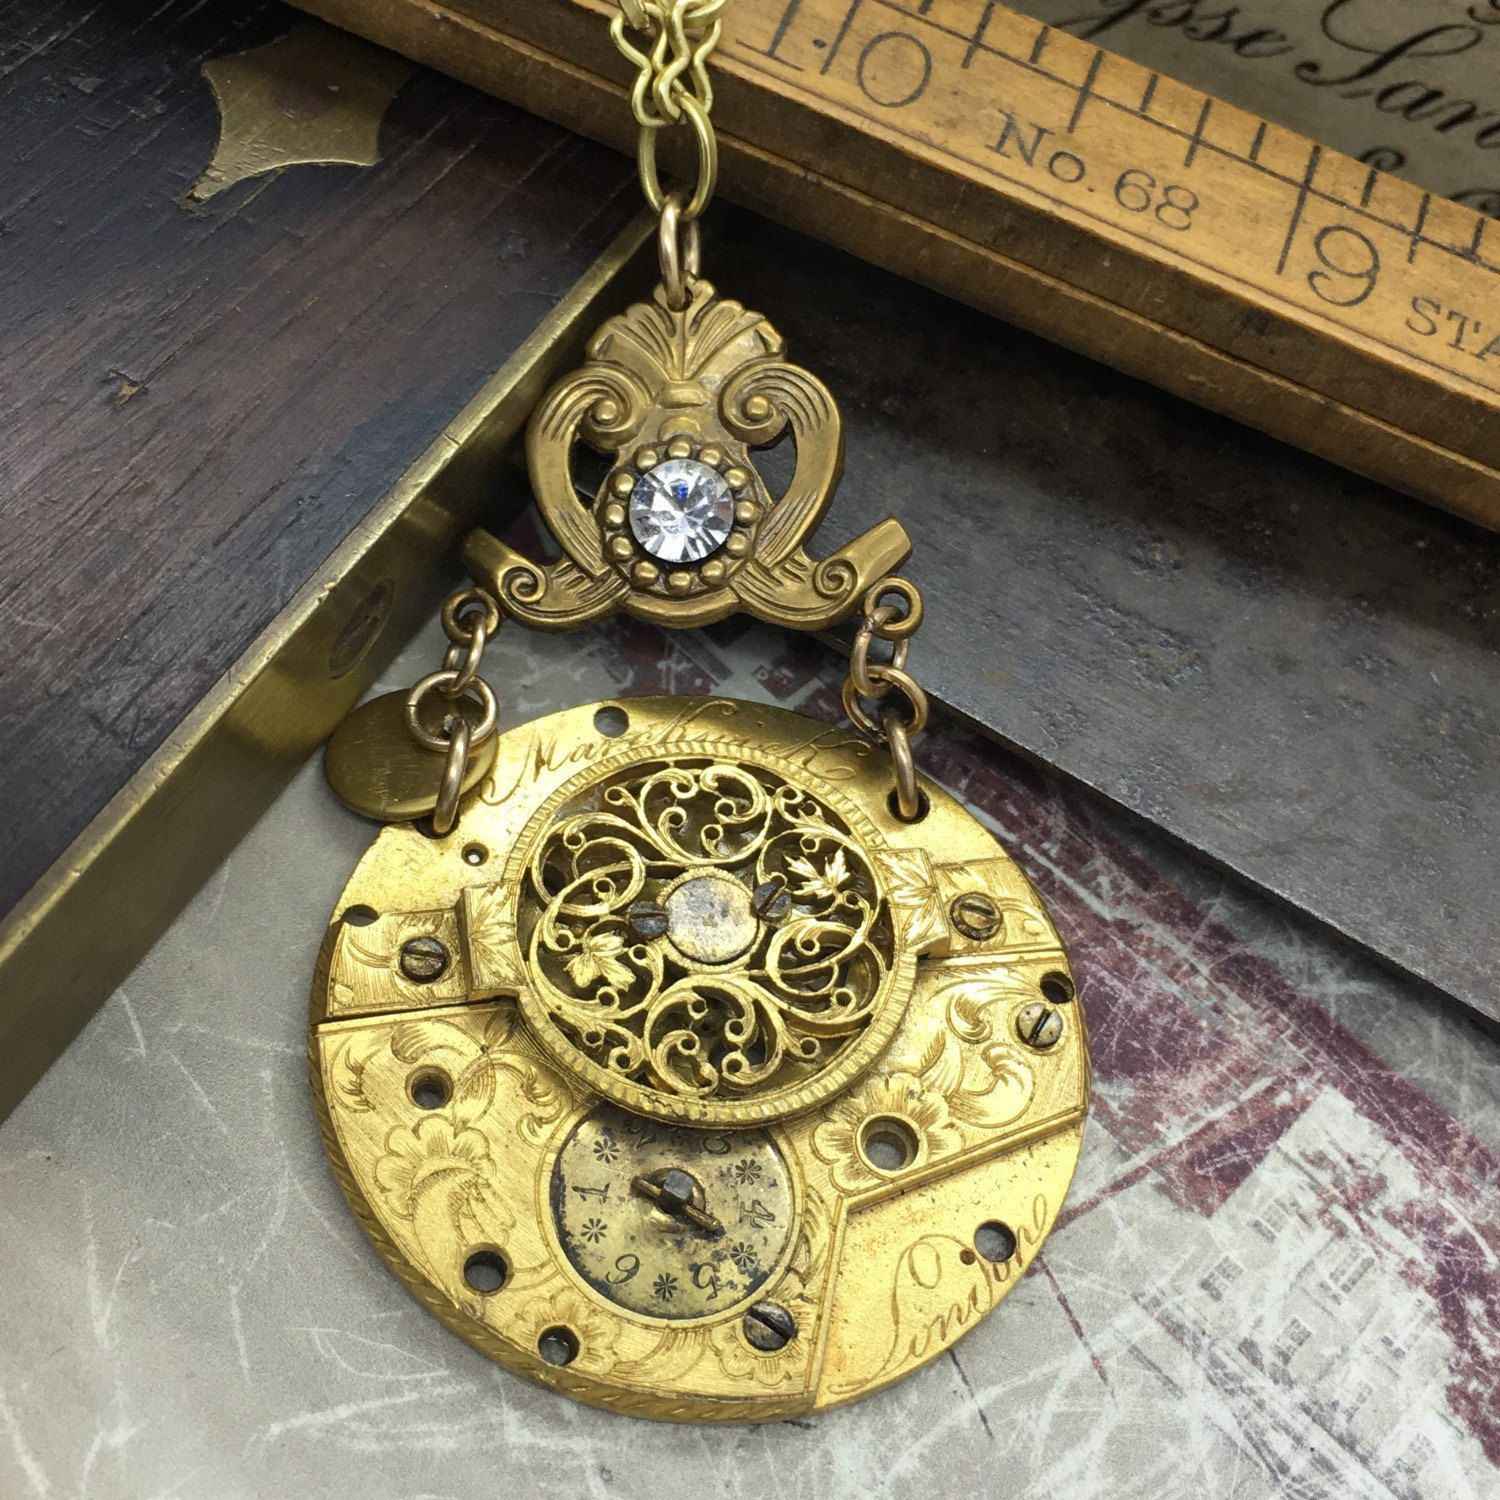 The watchmaker series coming soon to the Victorian Magpie shop 14 unique pieces - all one of a kind with history of each watchmaker